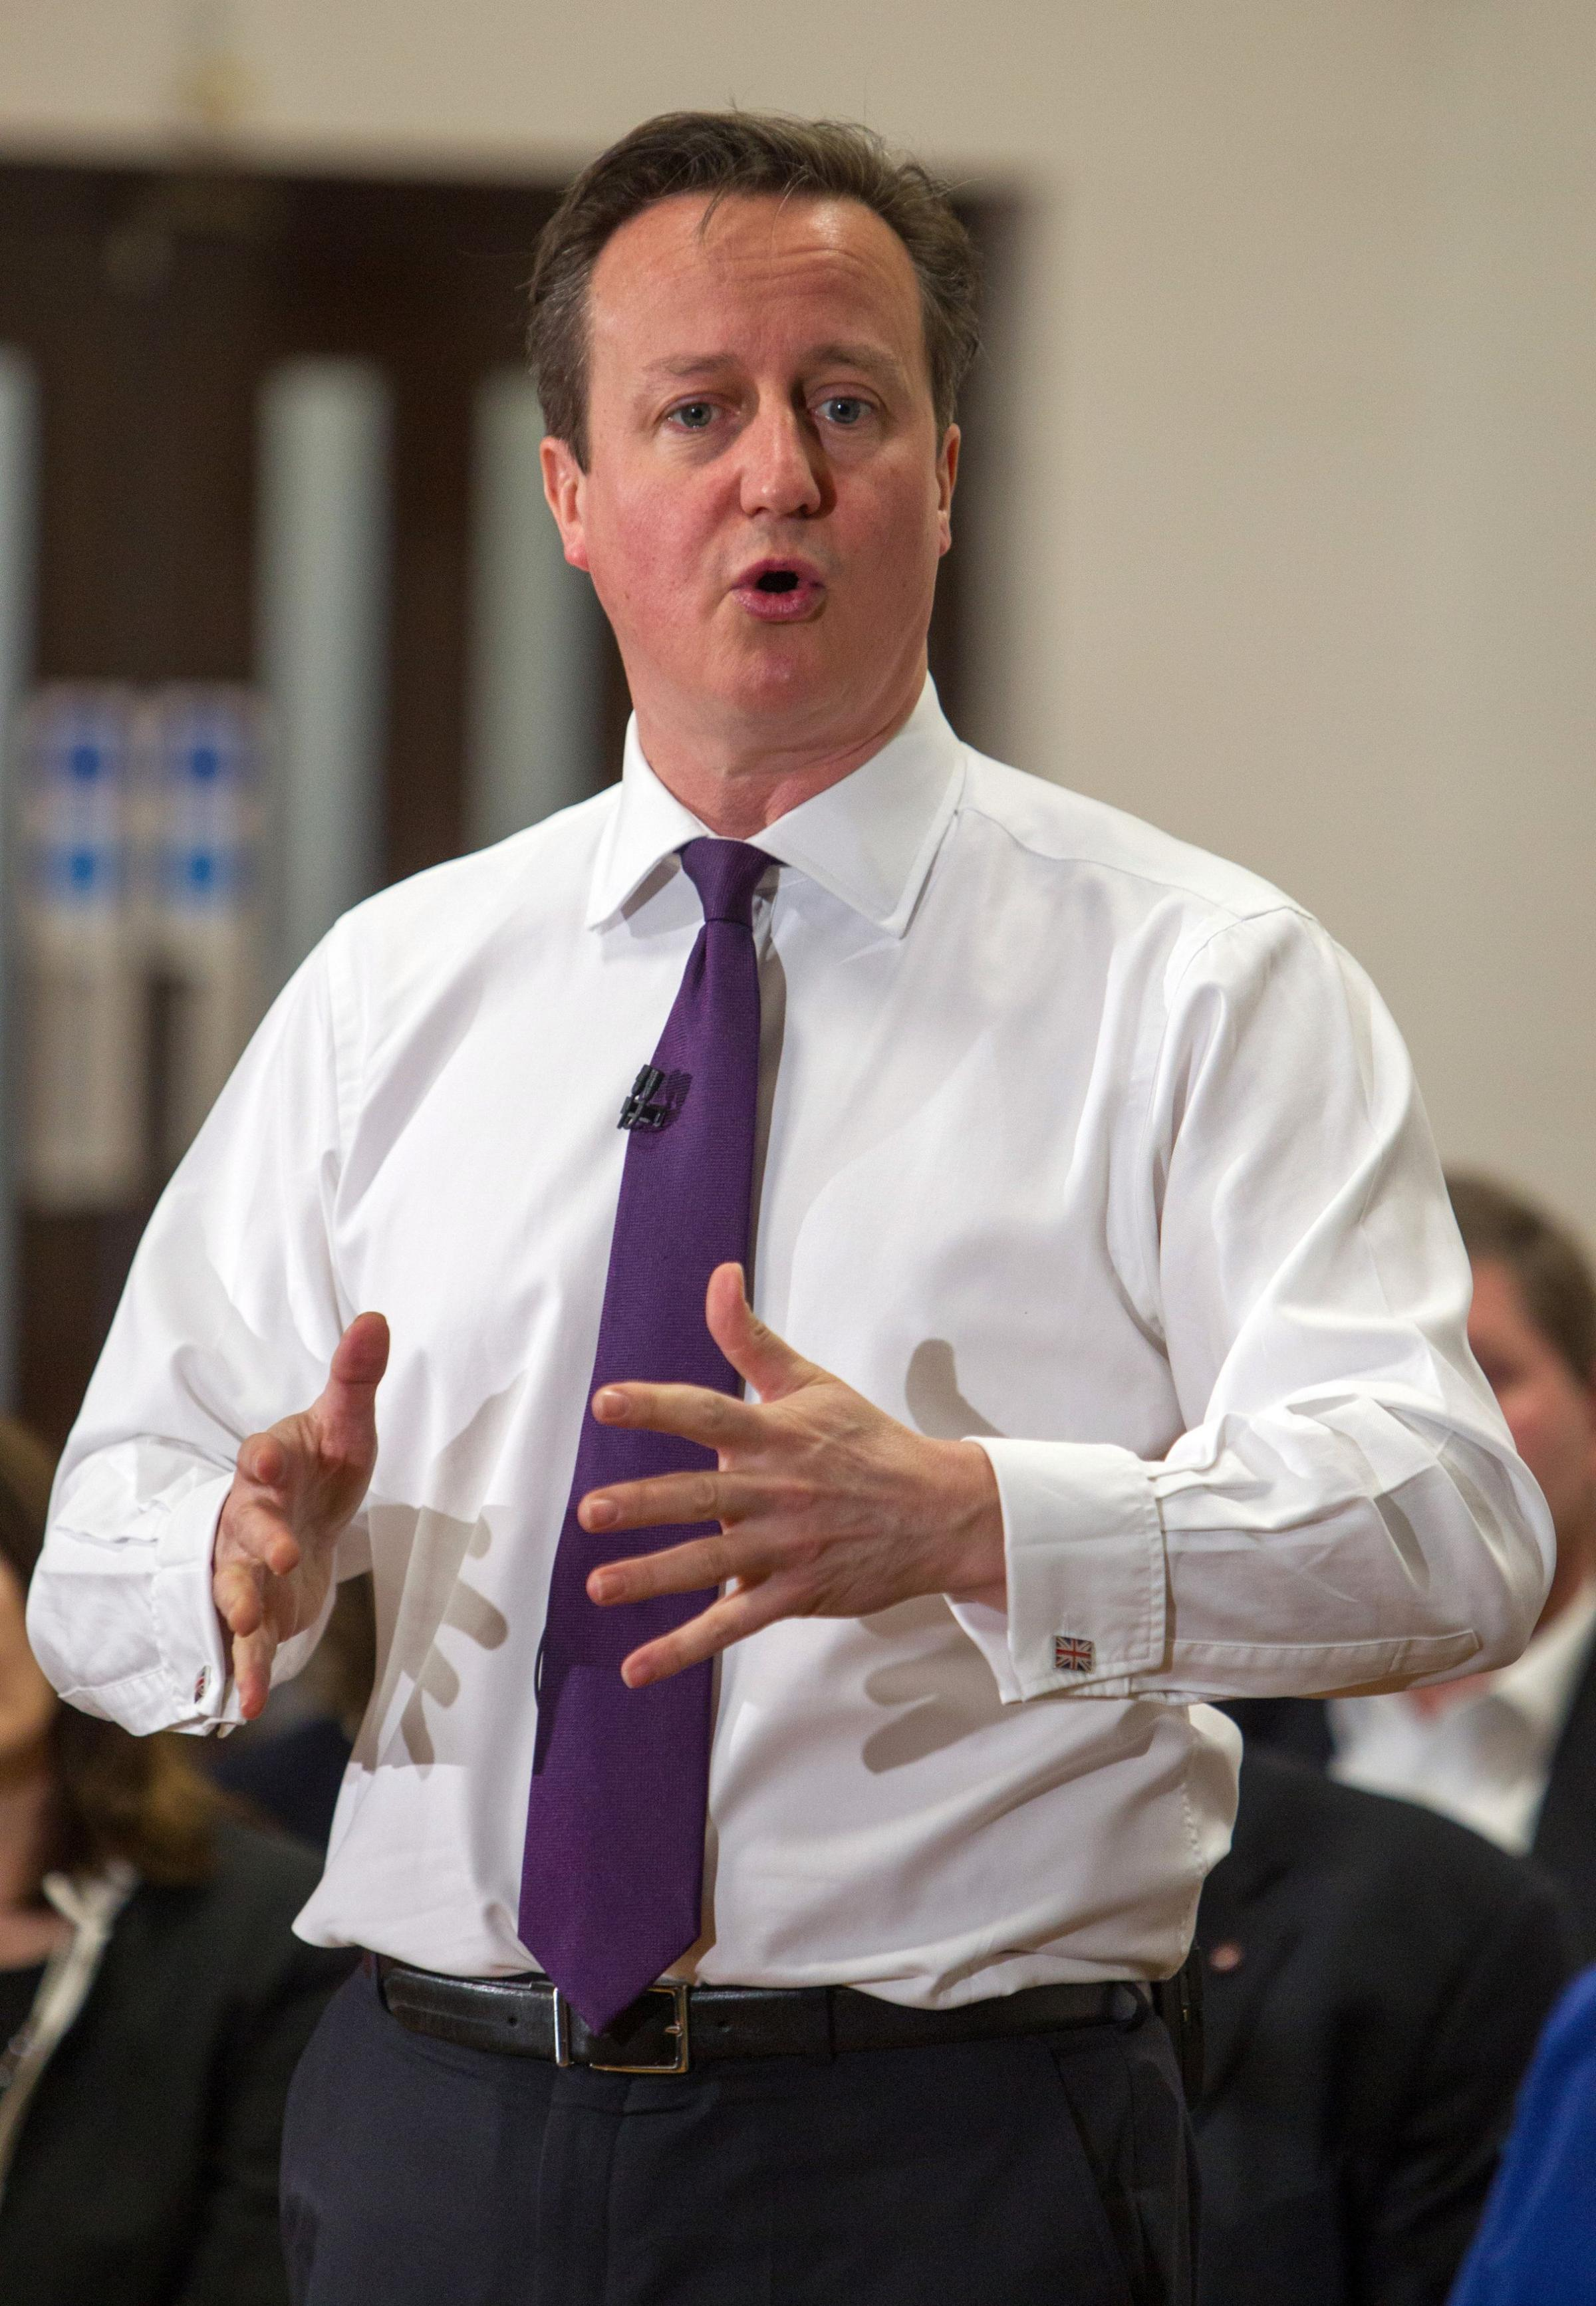 Prime Minister David Cameron says the Growth Fund is a fair deal for Worcestershire